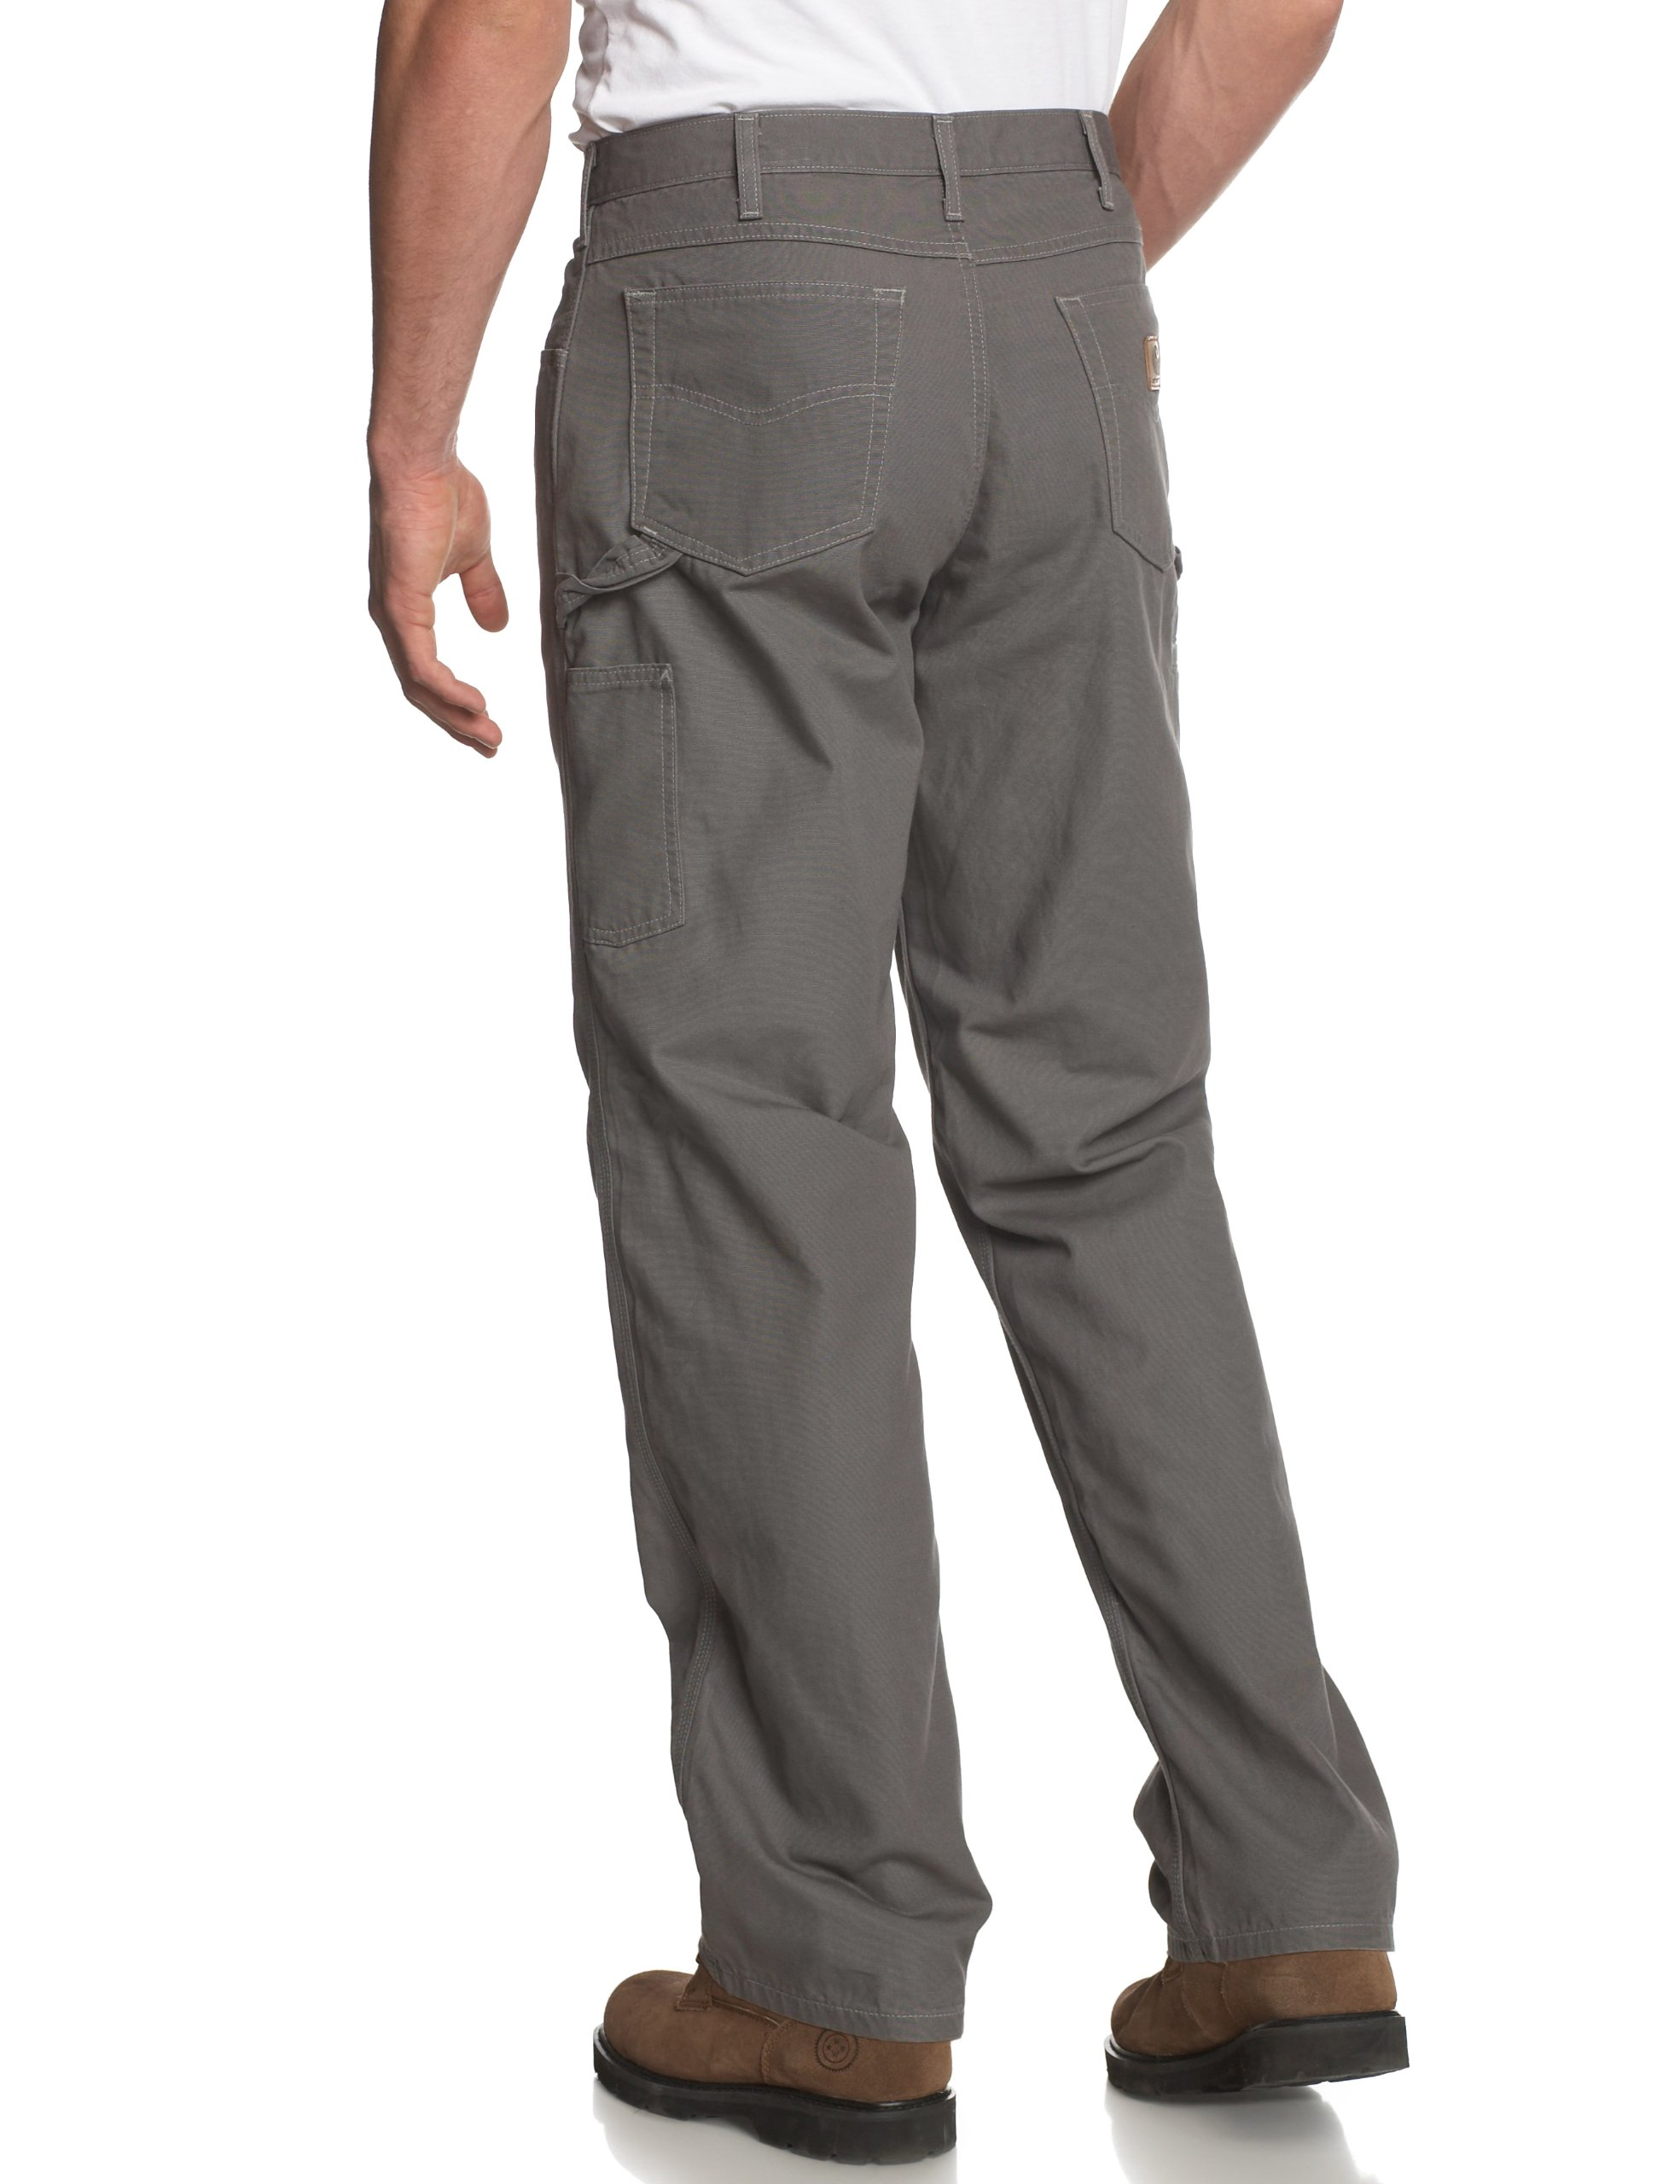 Carhartt carpenter pants fast drying self leveling compound